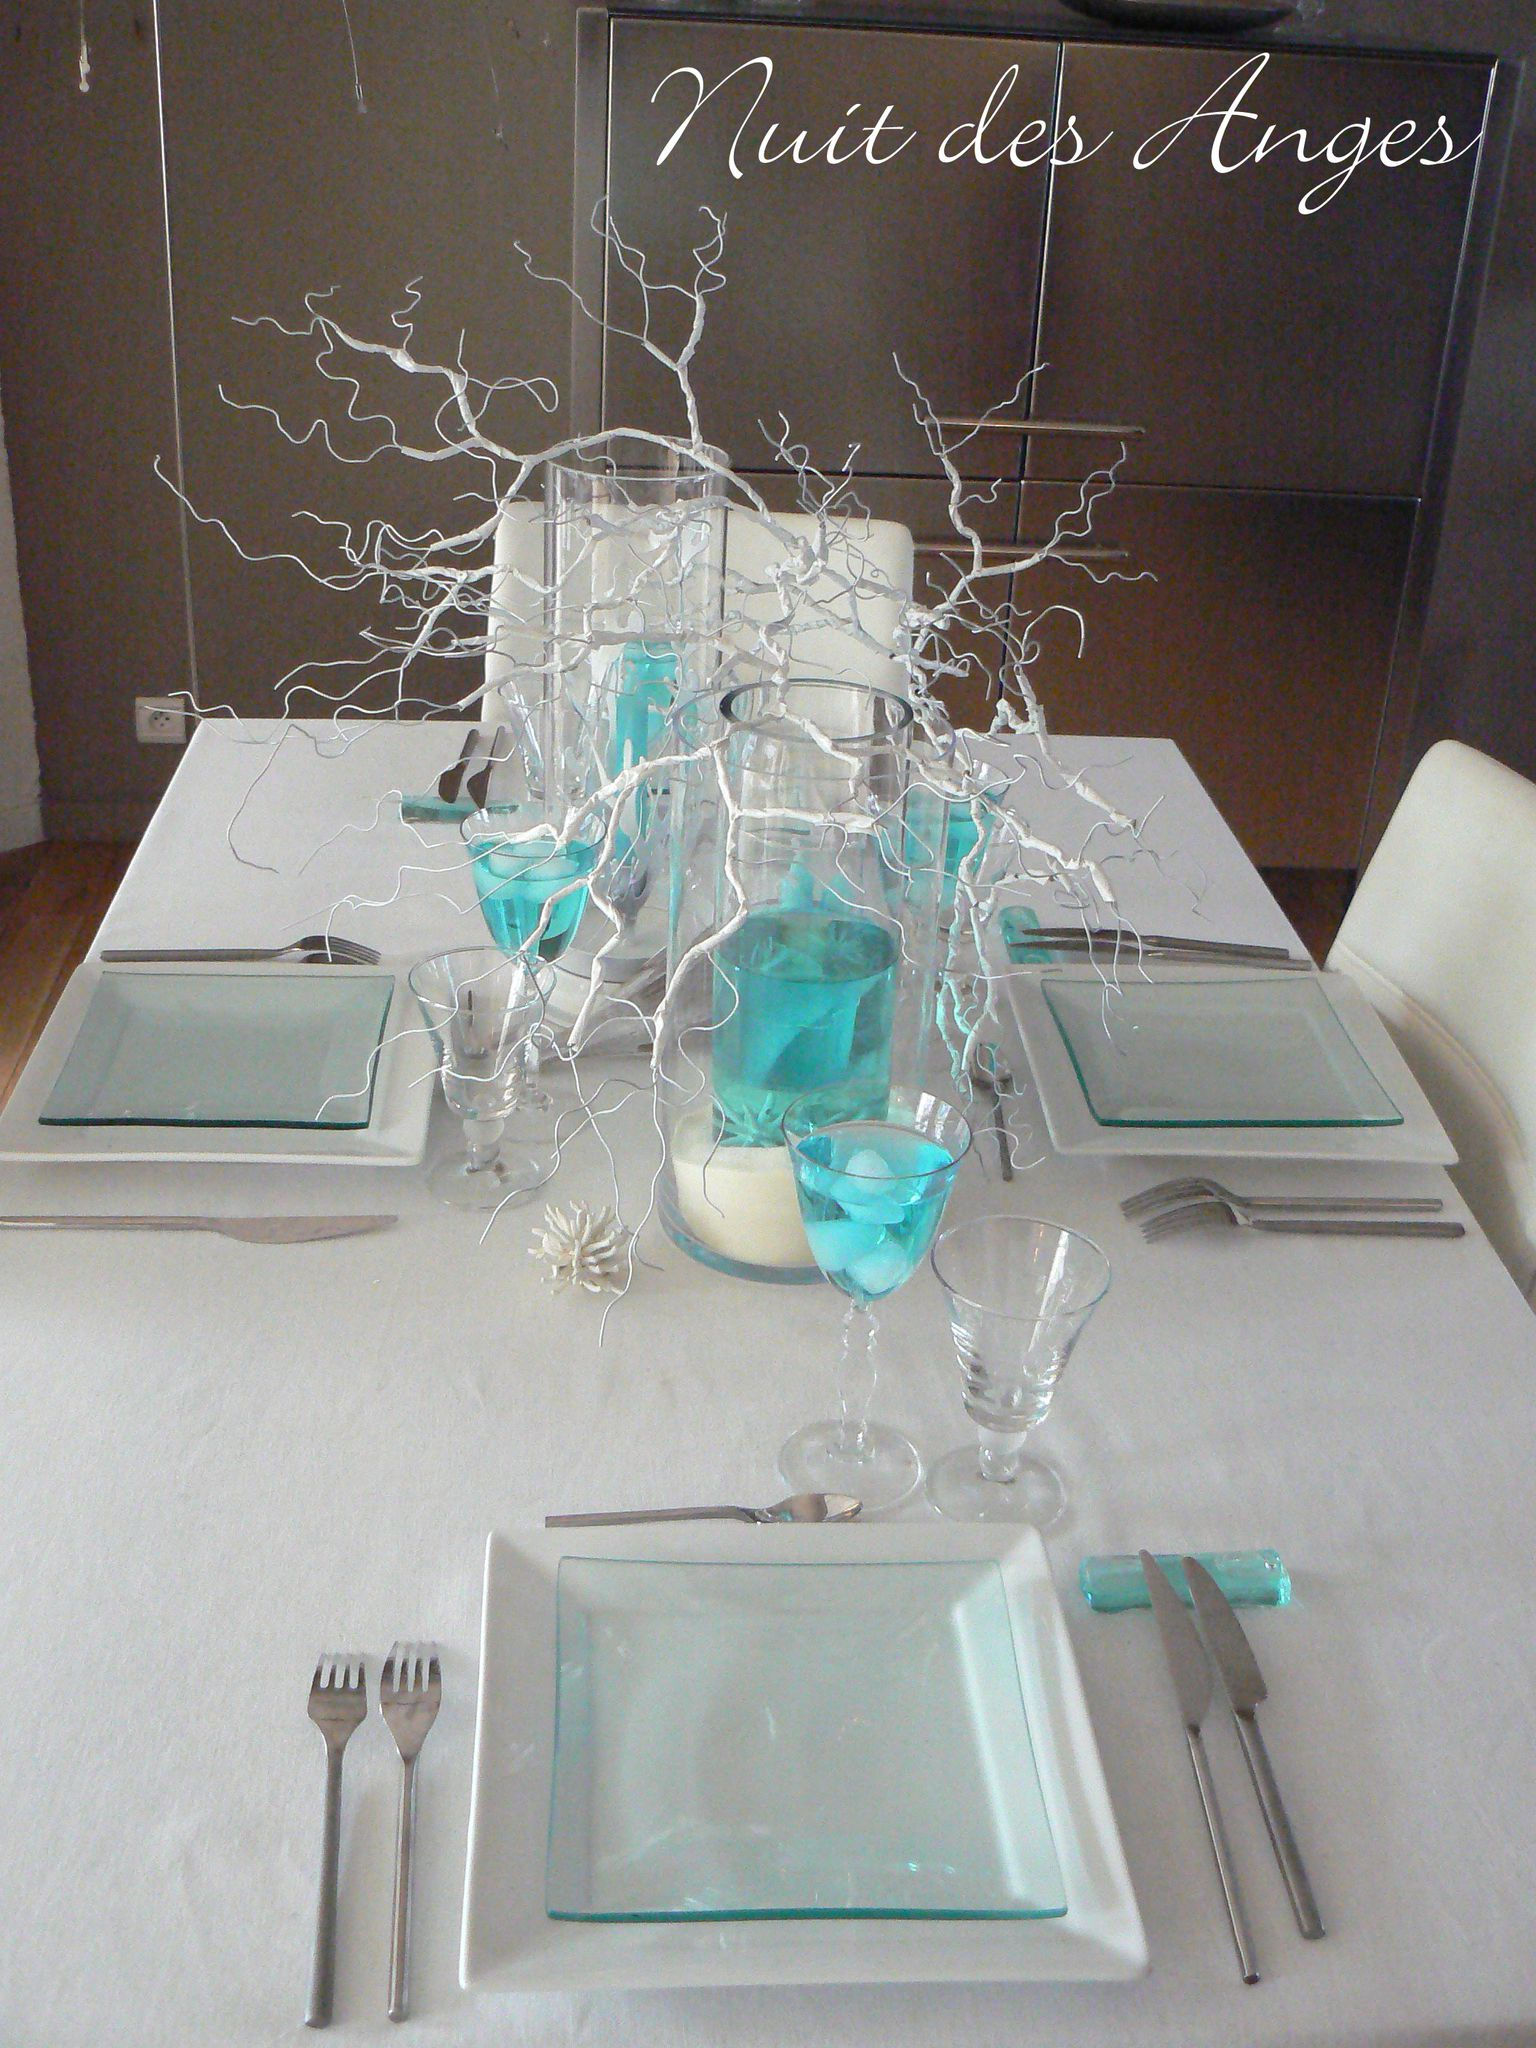 nuit des anges d coratrice de mariage d coration de table turquoise exotique 001 photo de. Black Bedroom Furniture Sets. Home Design Ideas